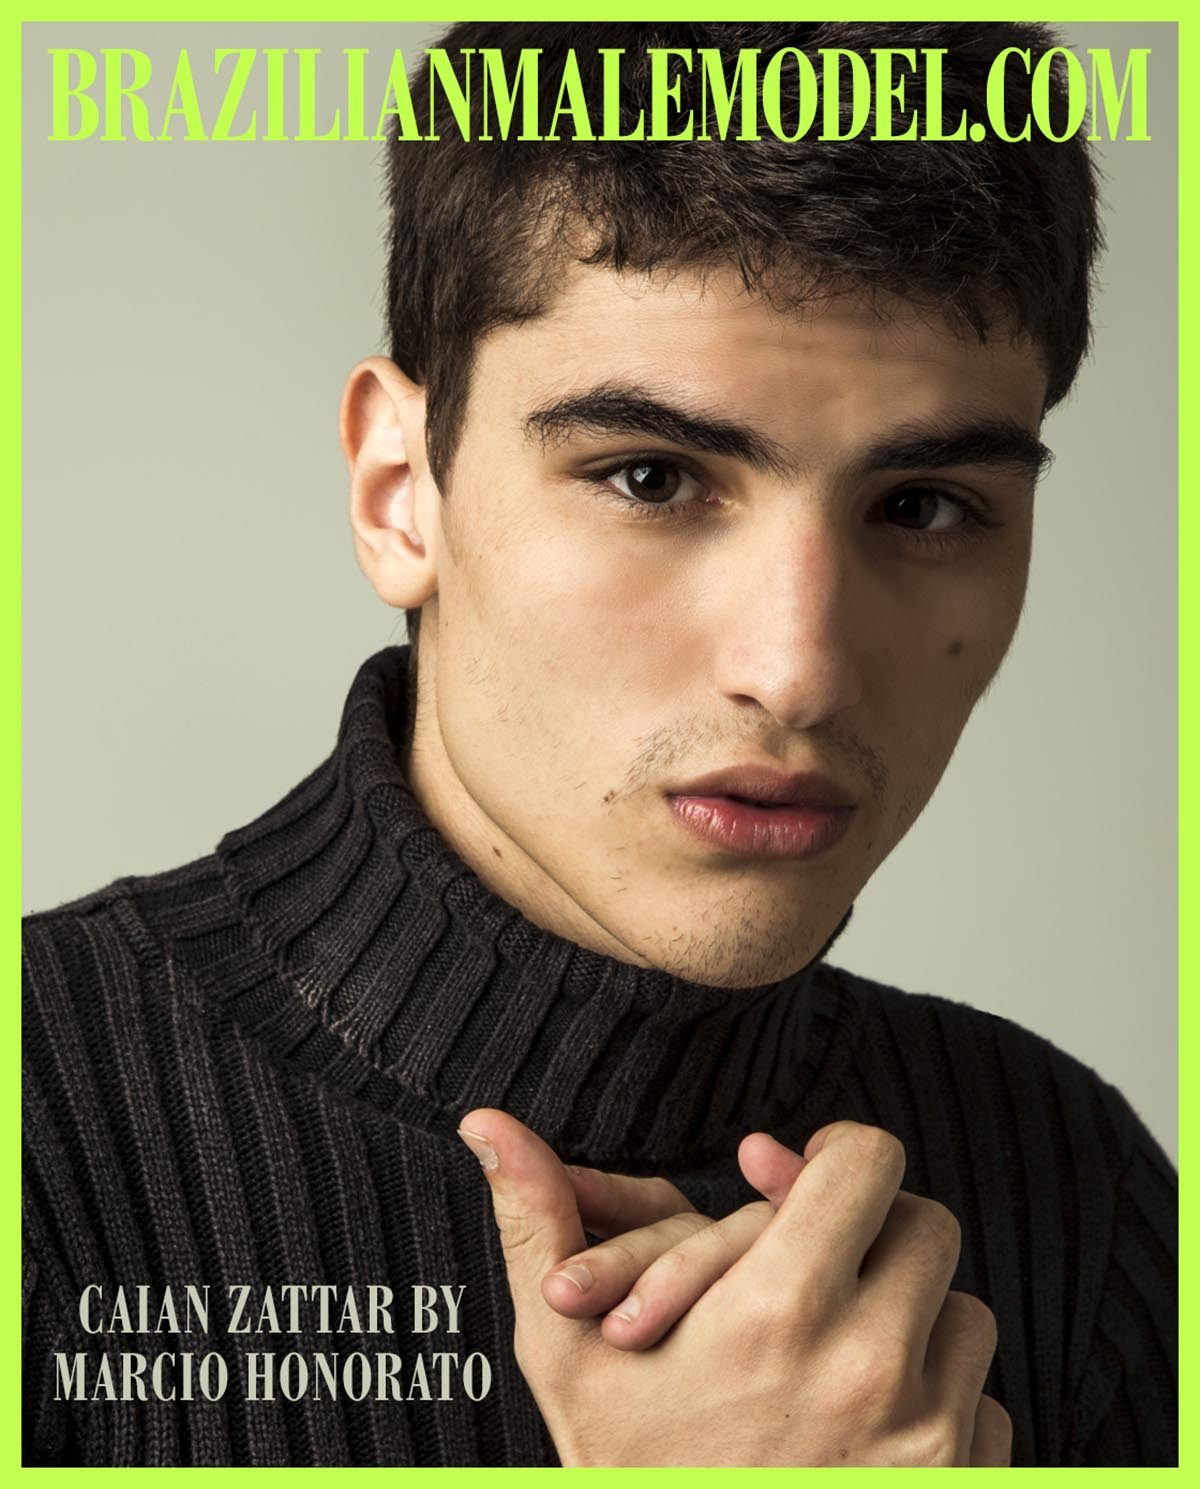 Caian​ Zattar by Marcio Honorato